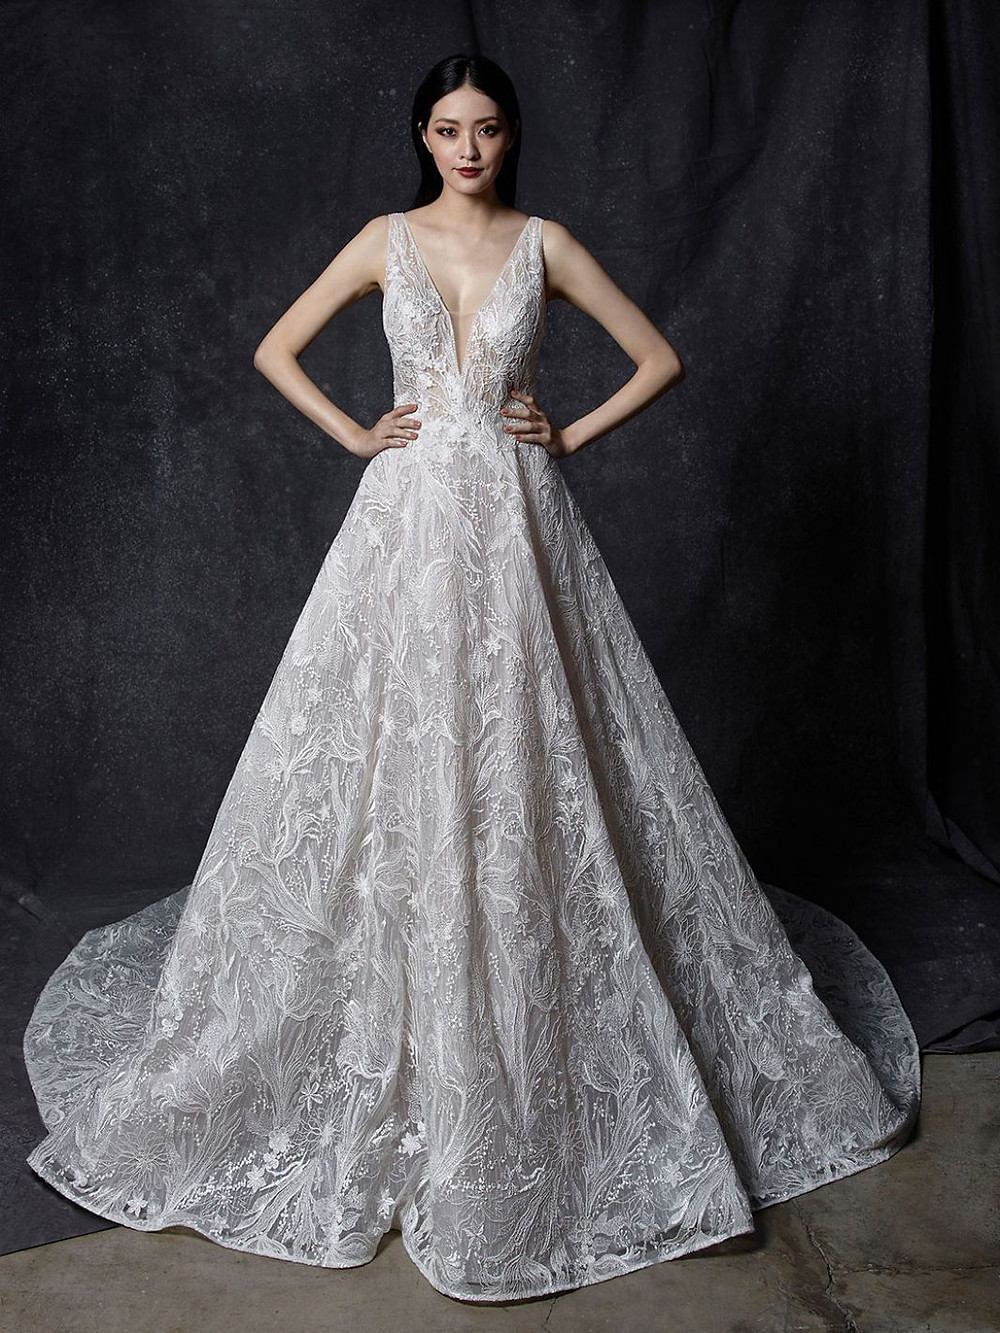 An Enzoani v neck, lace ball gown wedding dress with a long train